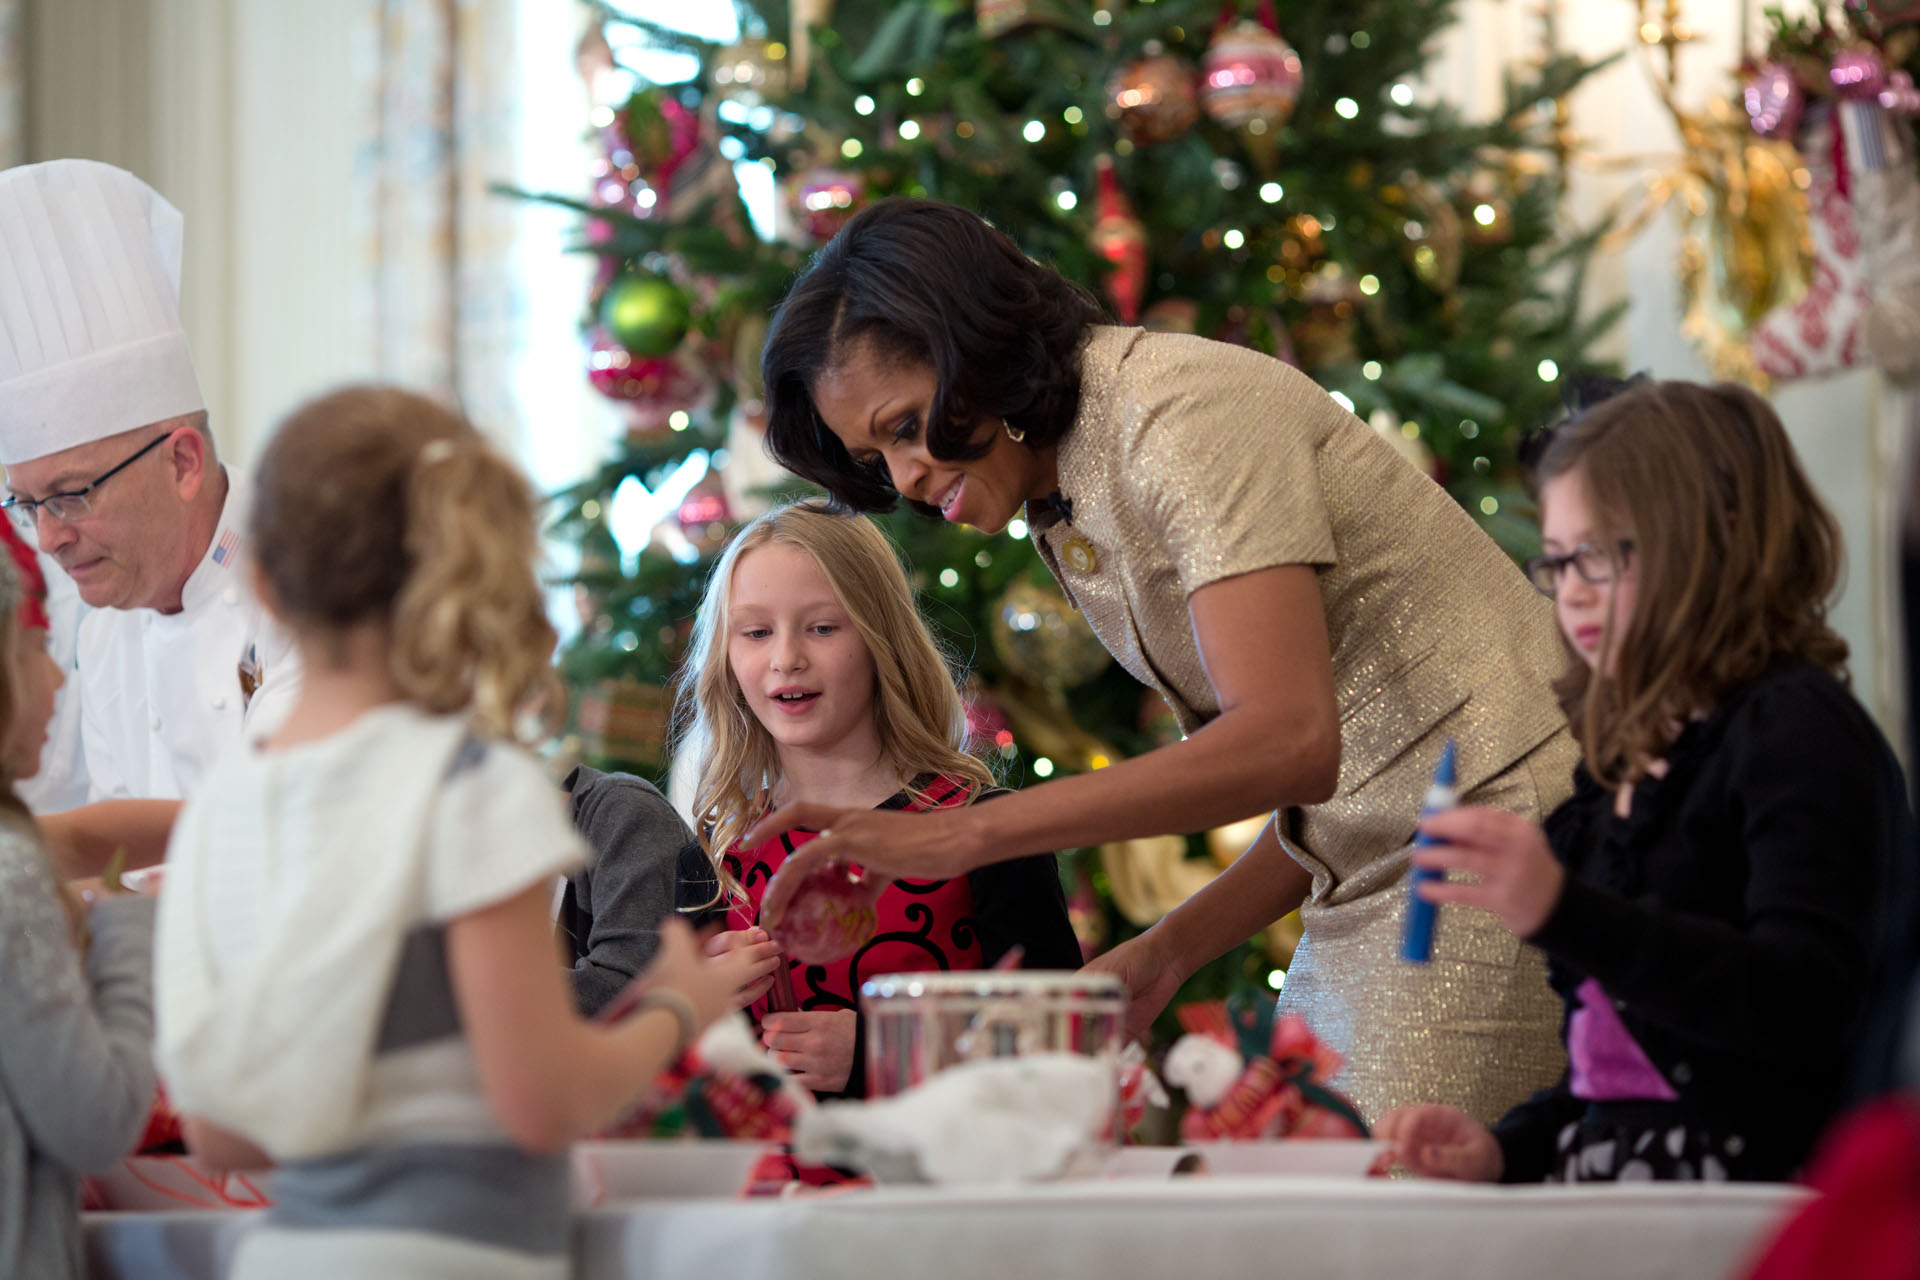 Holiday decorations at the white house are displayed during a press - First Lady Michelle Obama Participates In A Craft Project During The Holiday Press Preview Nov